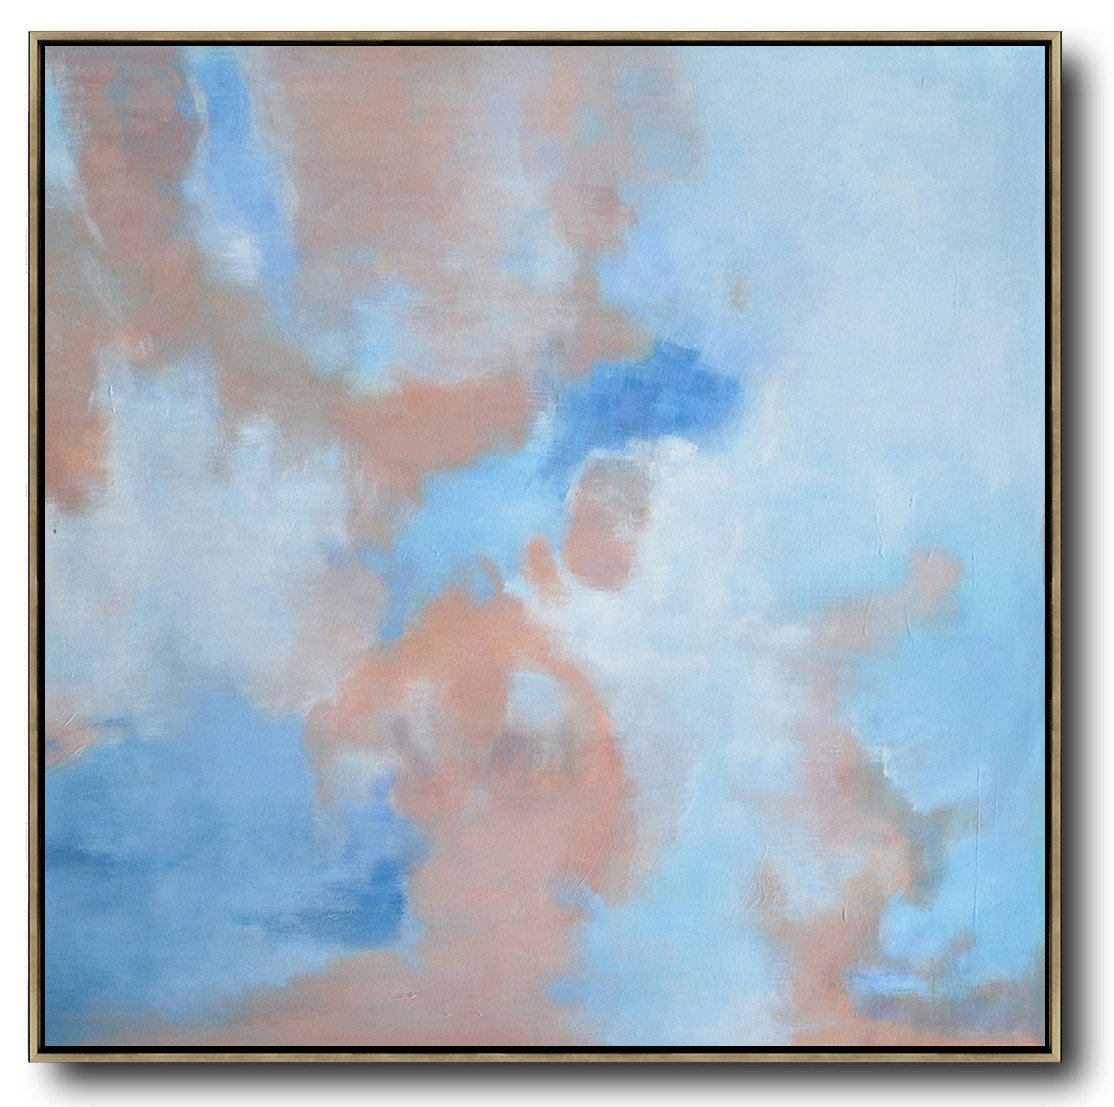 "Extra Large 72"" Acrylic Painting,Oversized Abstract Landscape Oil Painting,Acrylic Painting Canvas Art,Blue,Pink,White.etc"